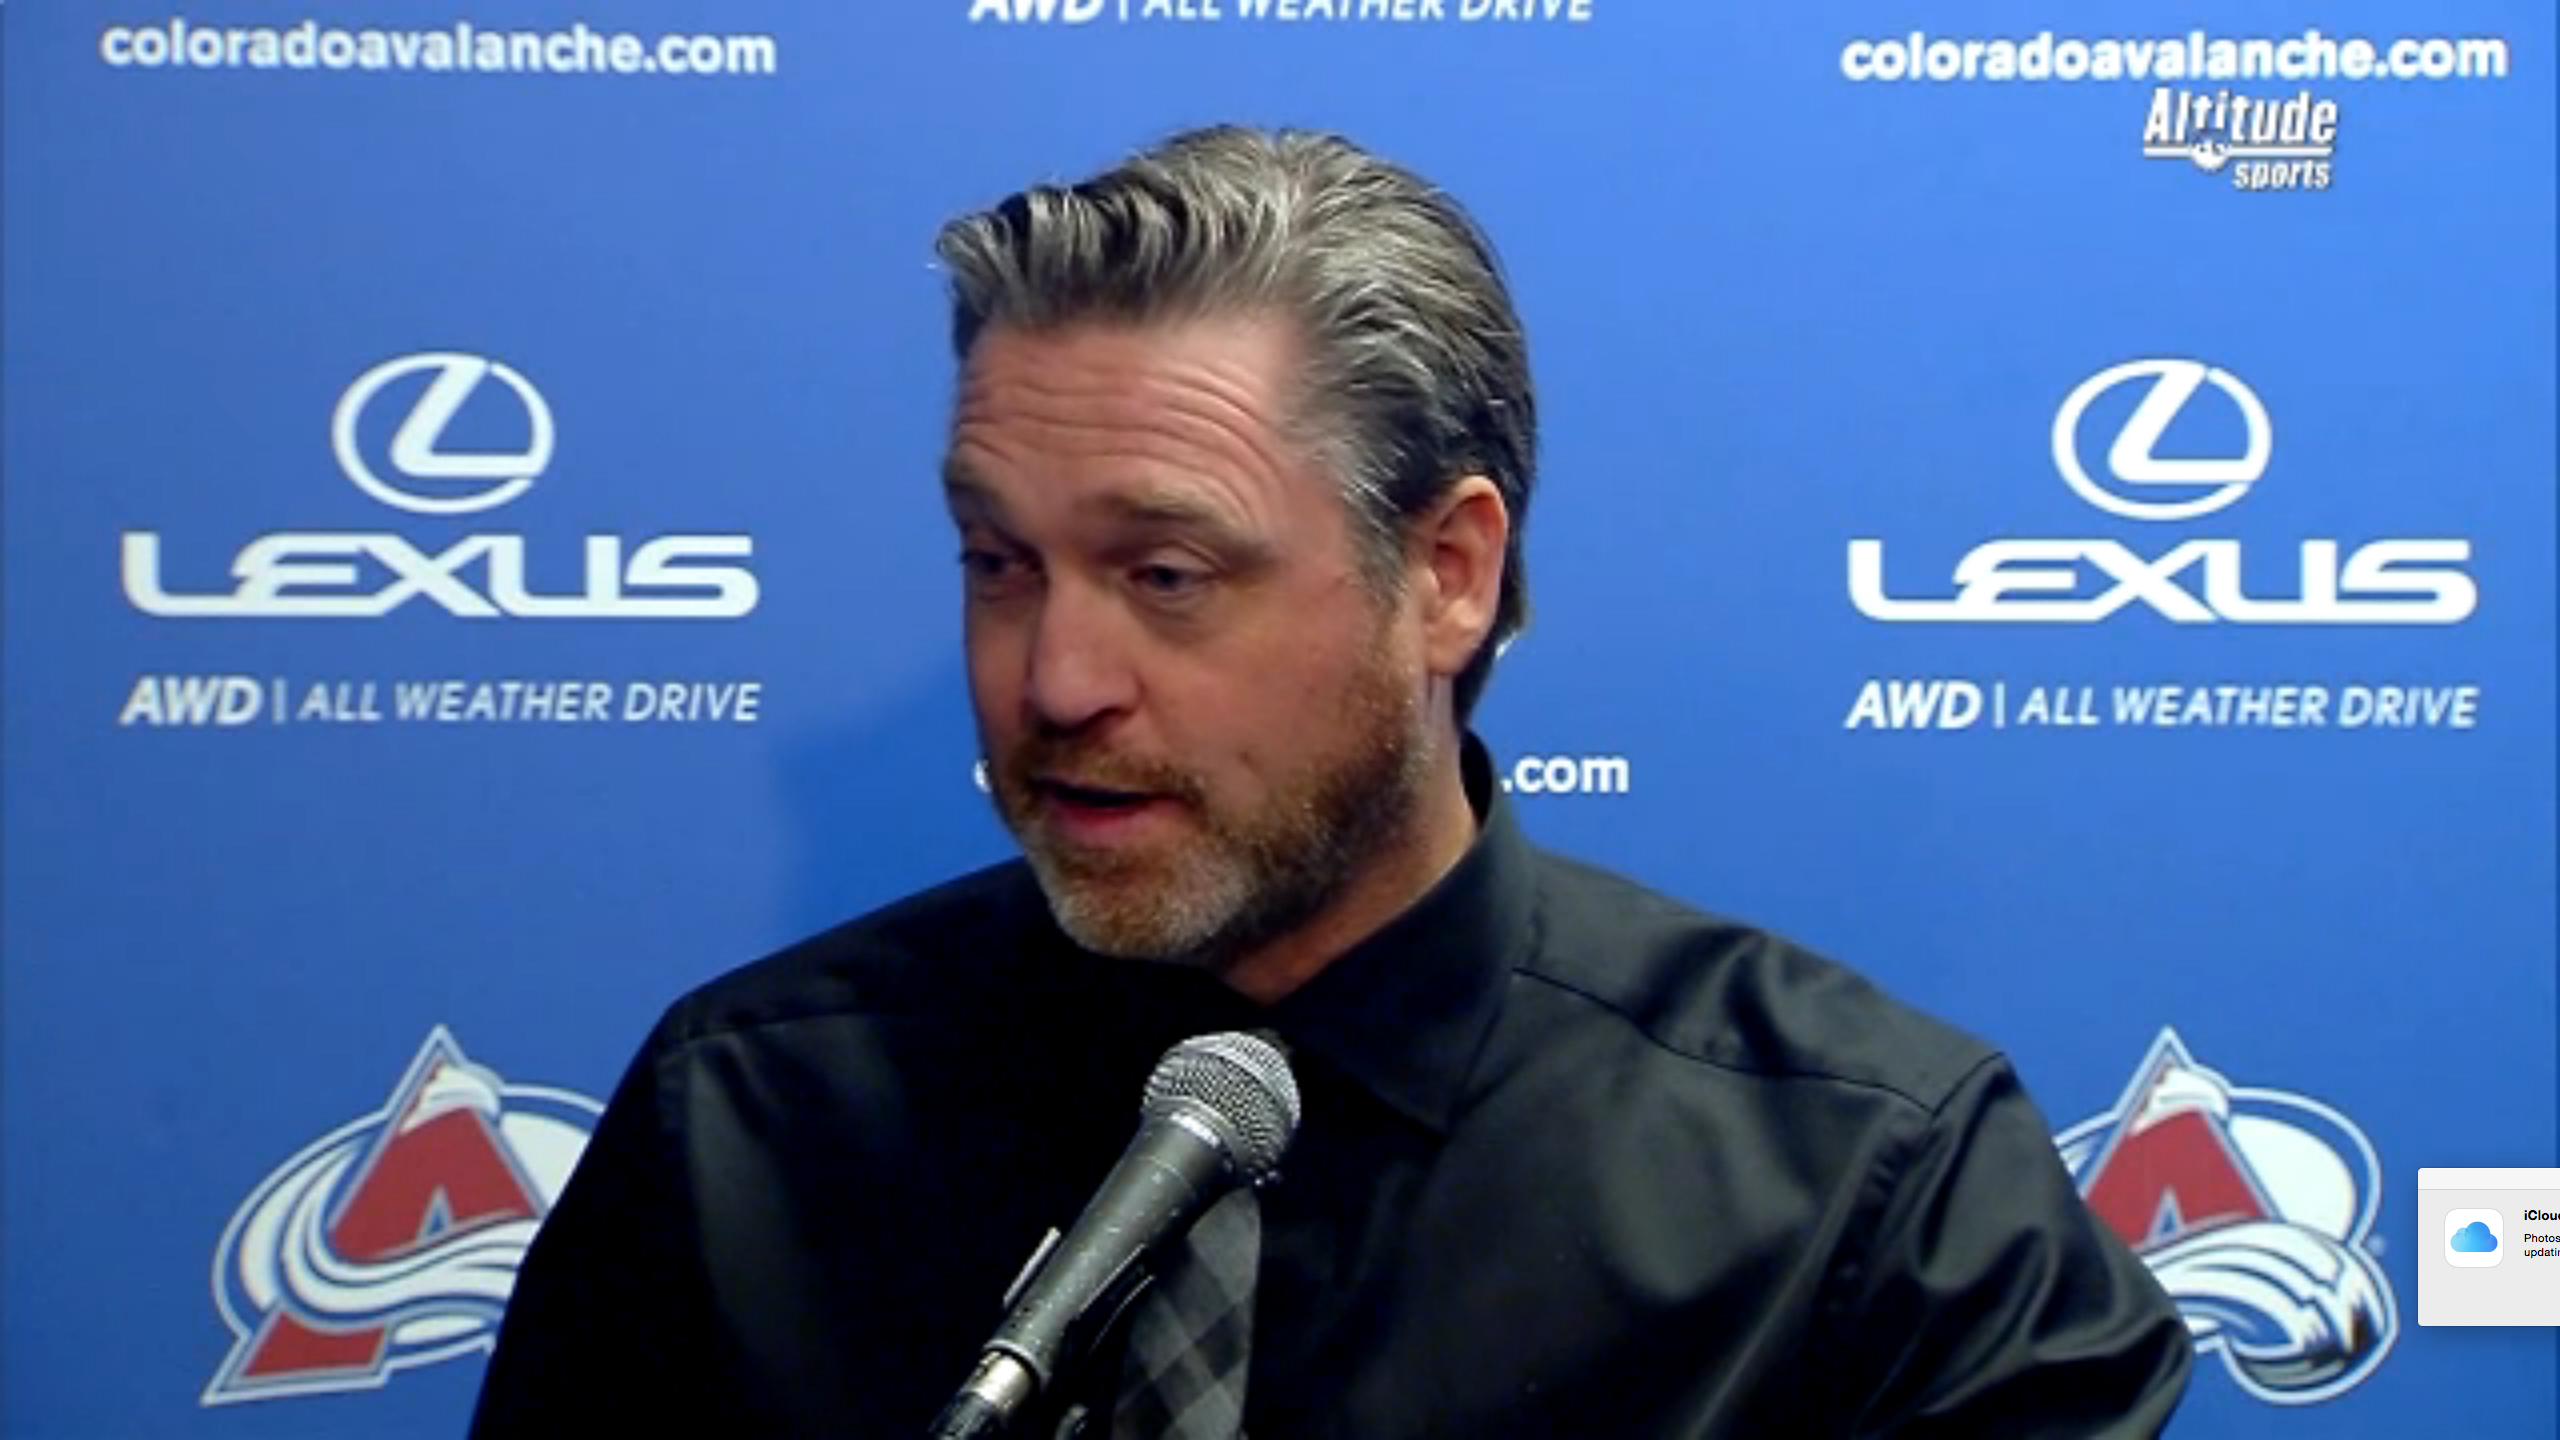 Patrick-Roy-Post-Game-121715.jpg